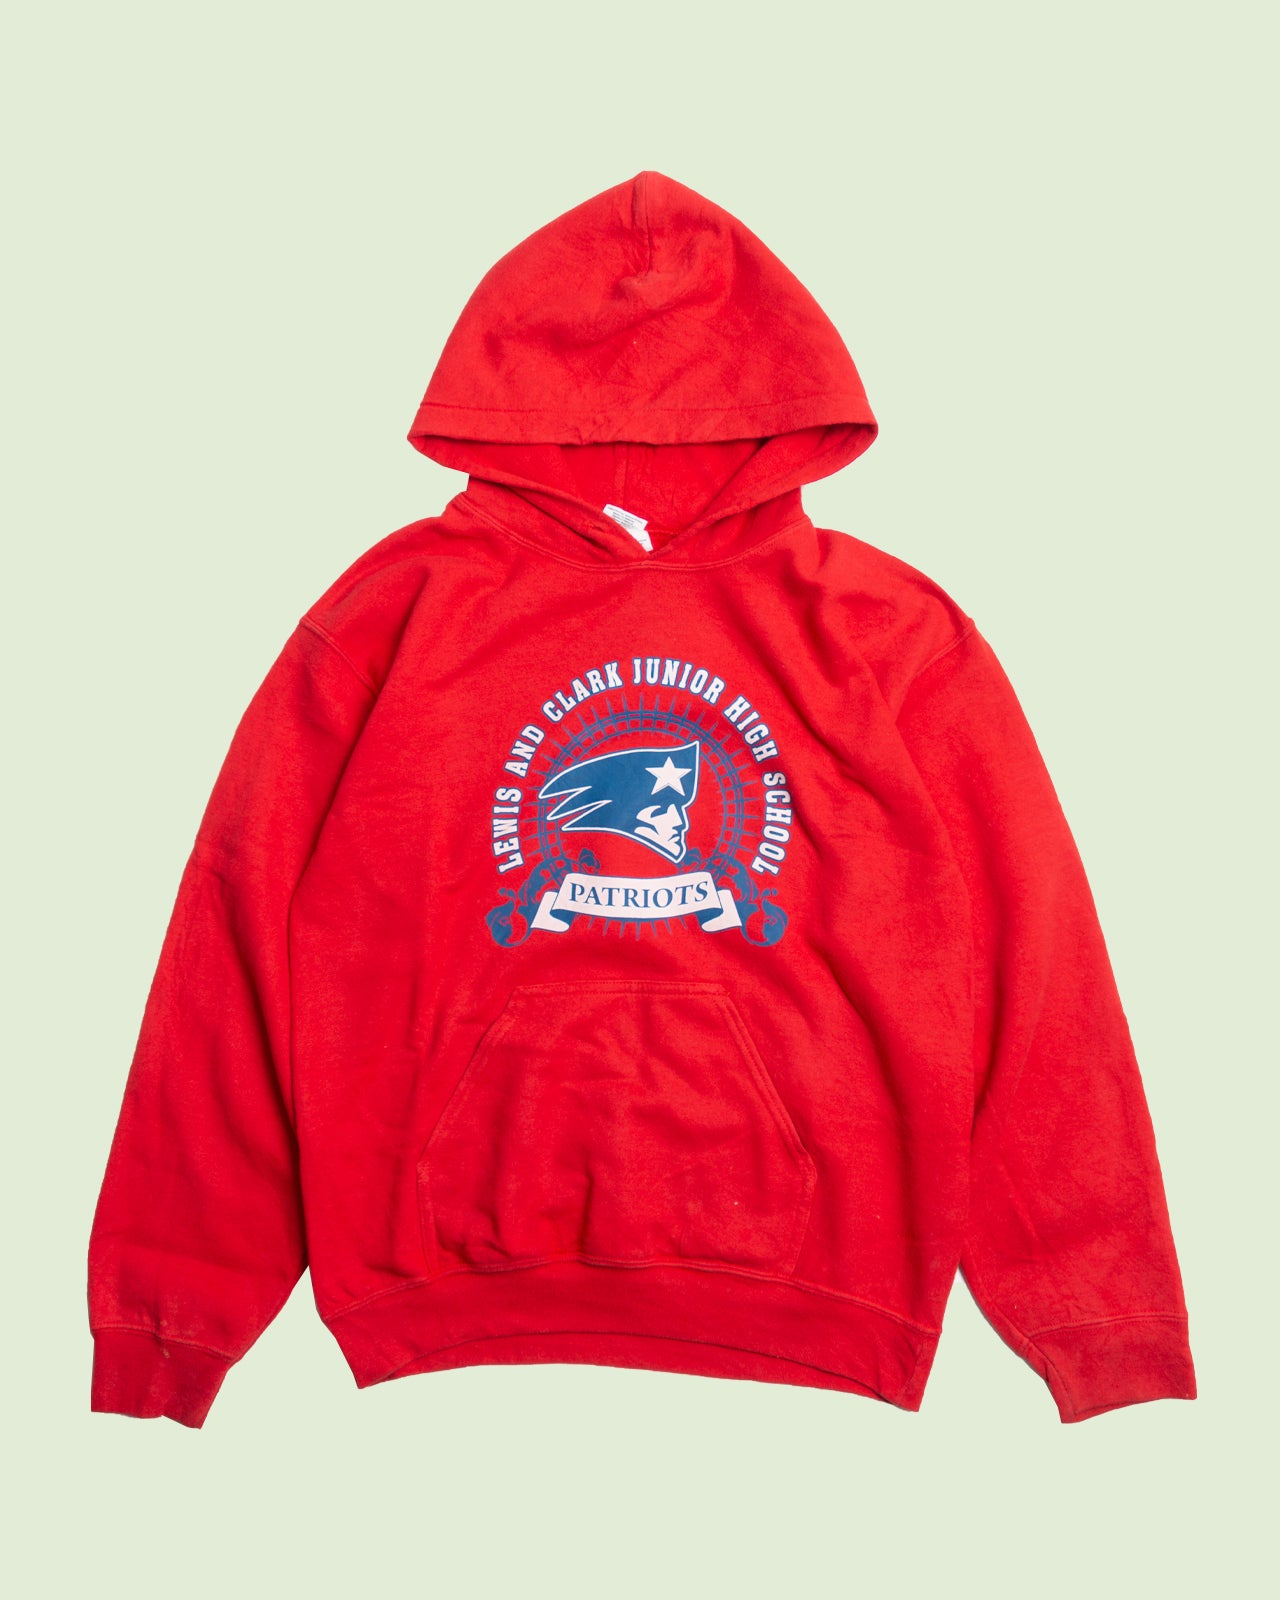 Patriots Sweater (M)